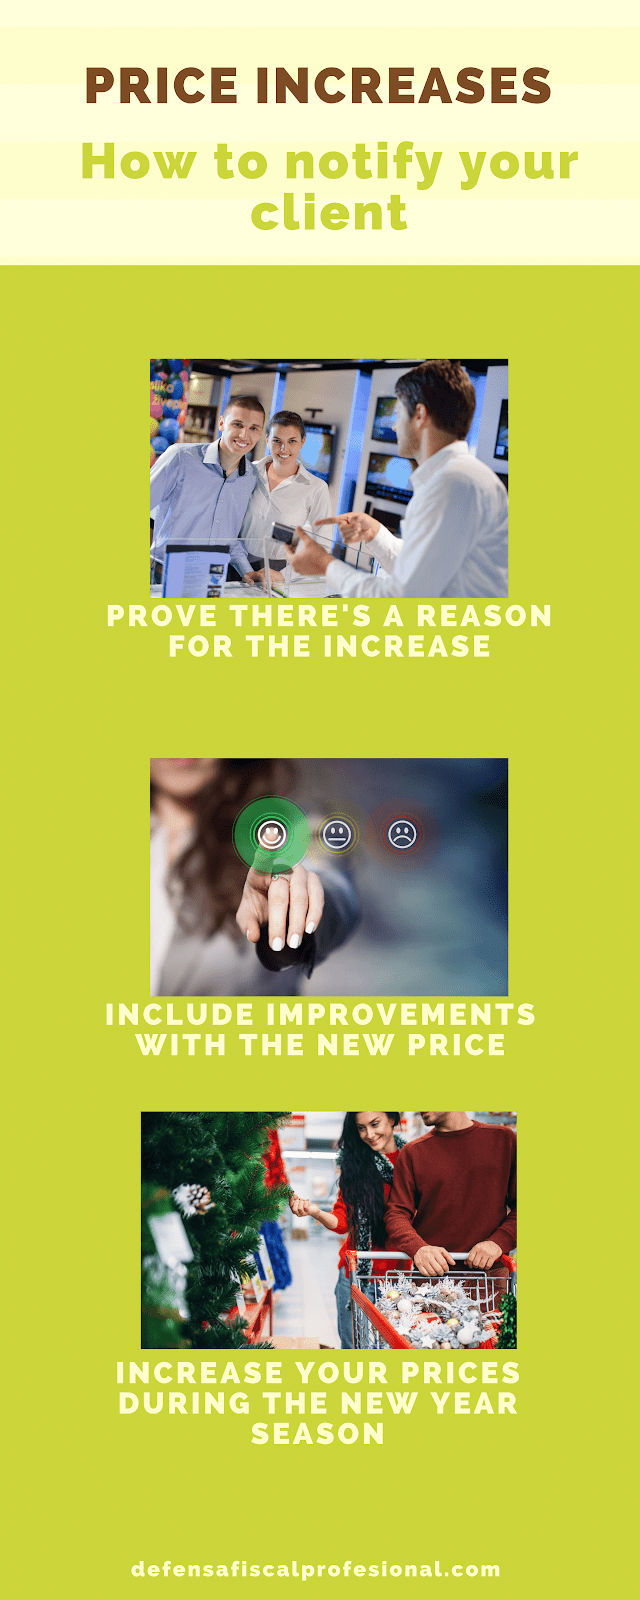 Infographic showing how to implement price increases